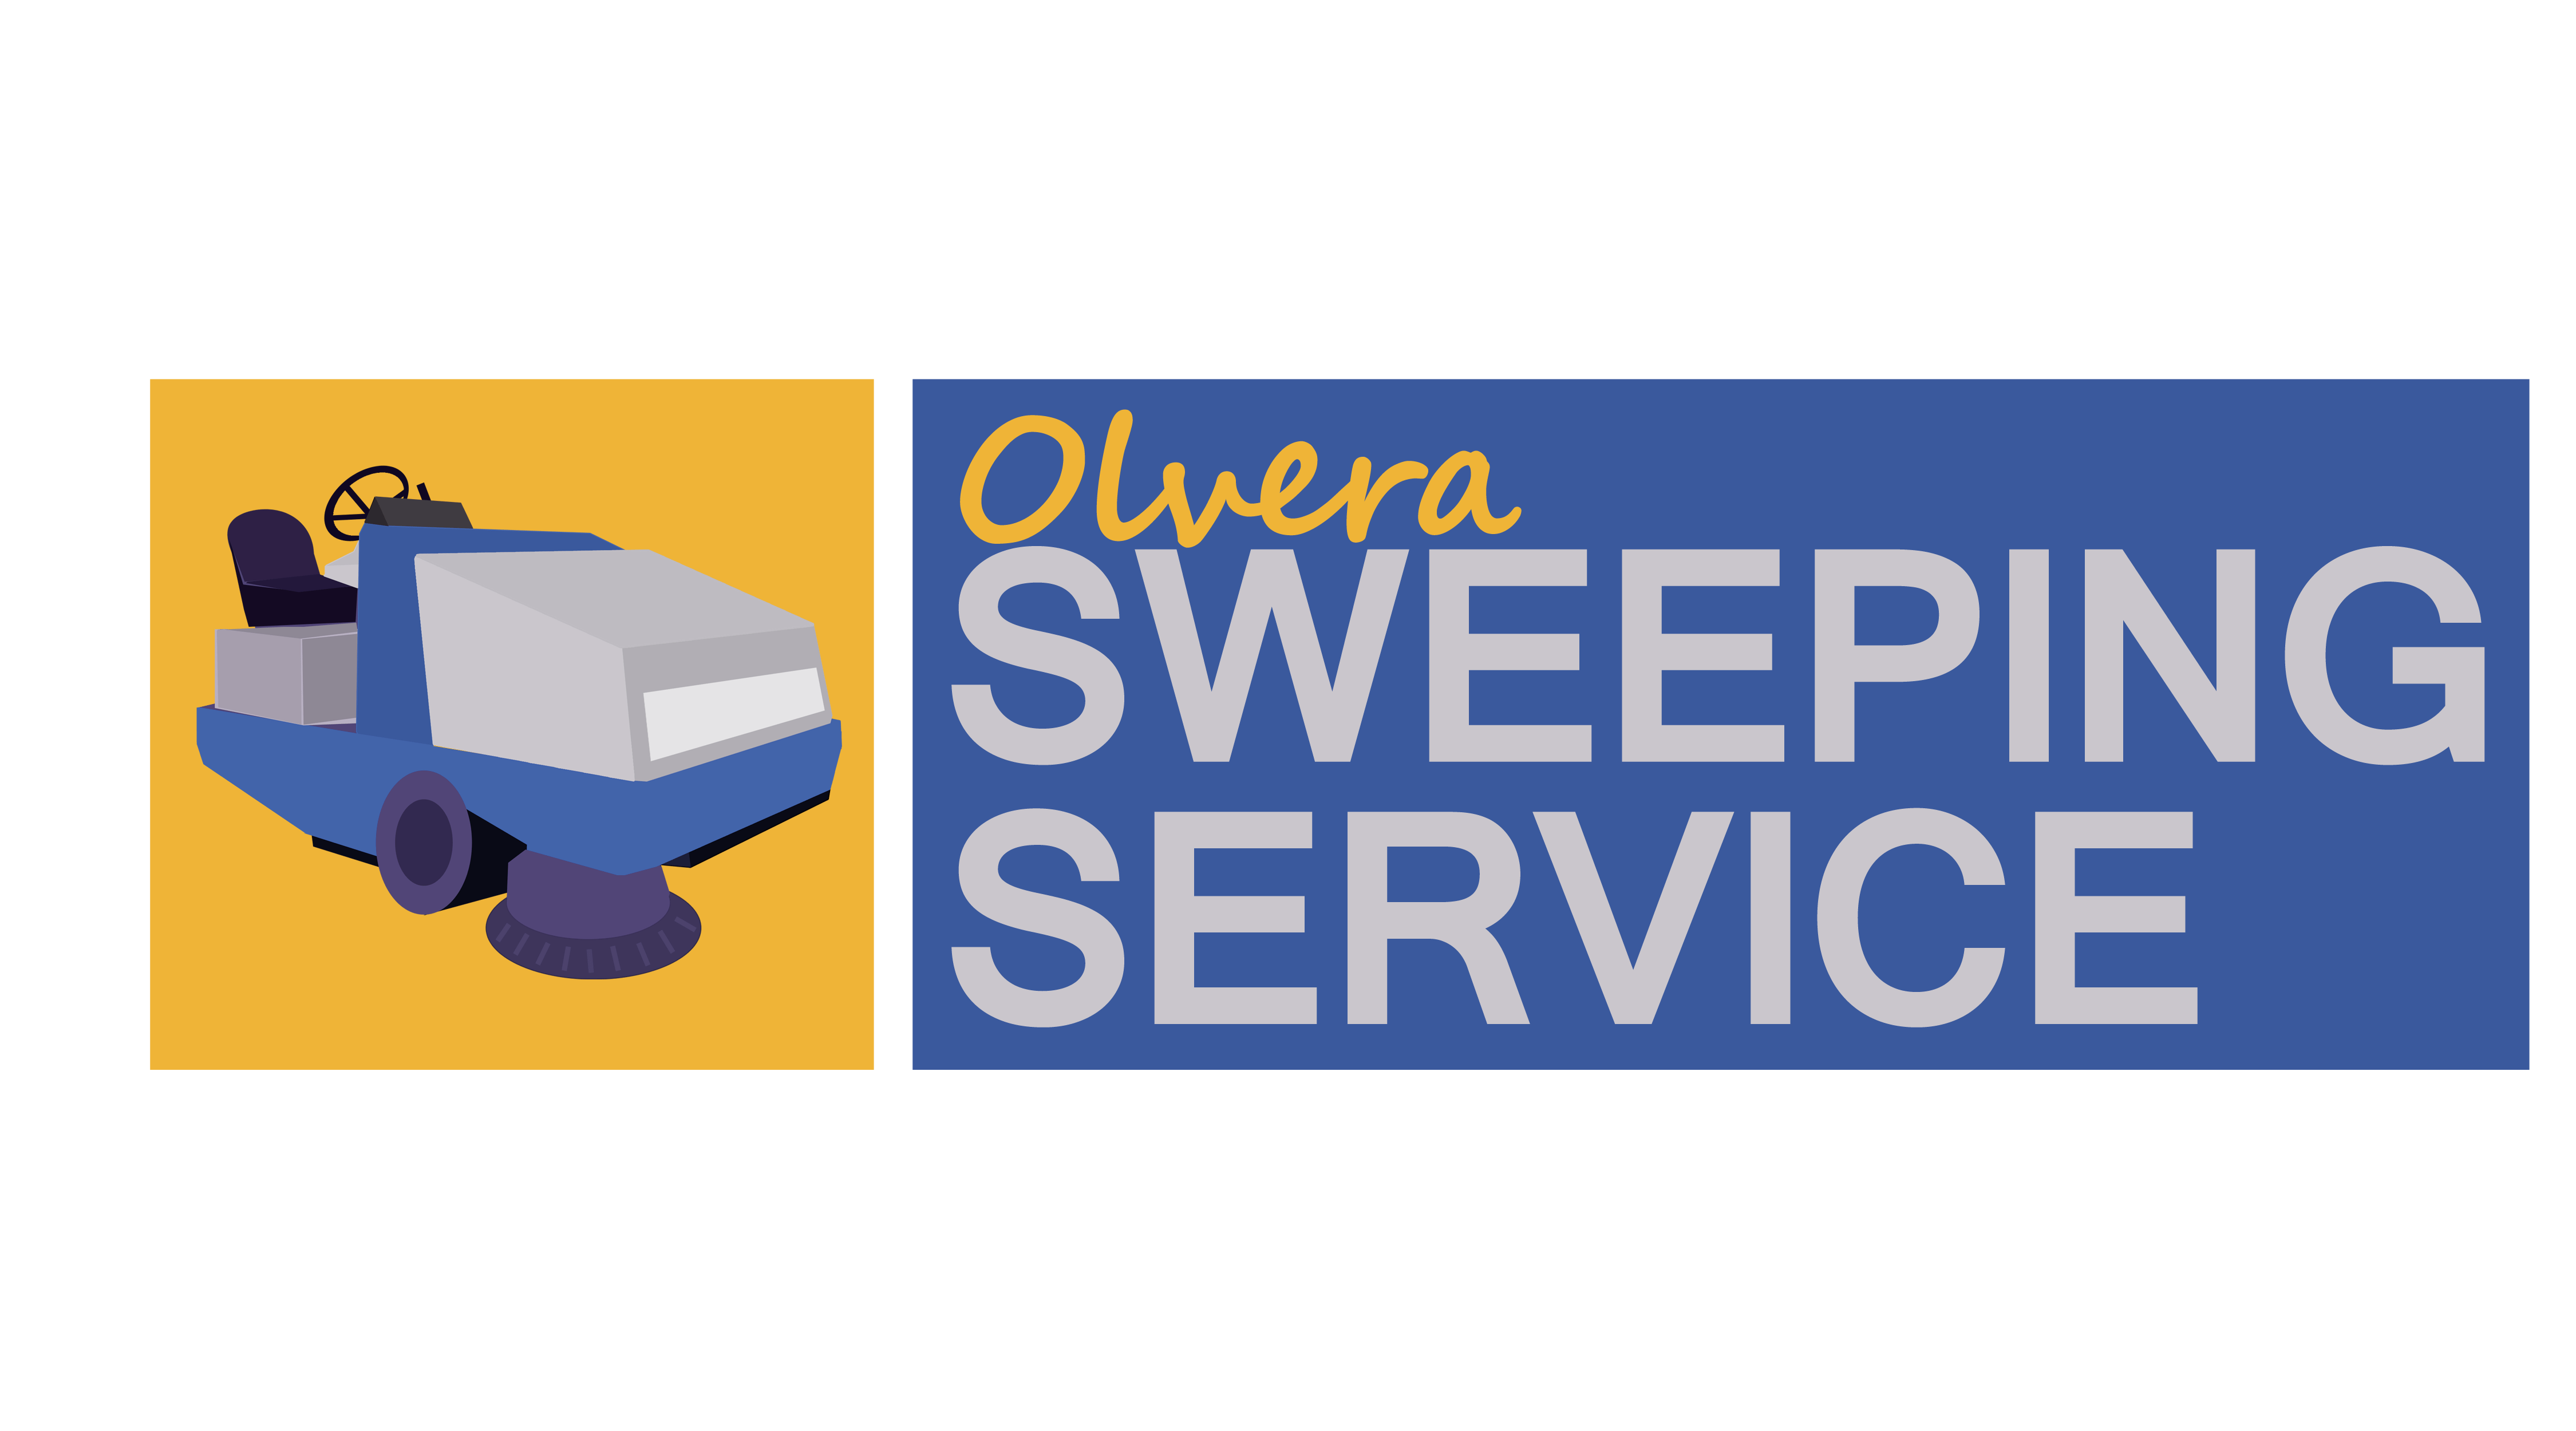 Olvera Sweeping